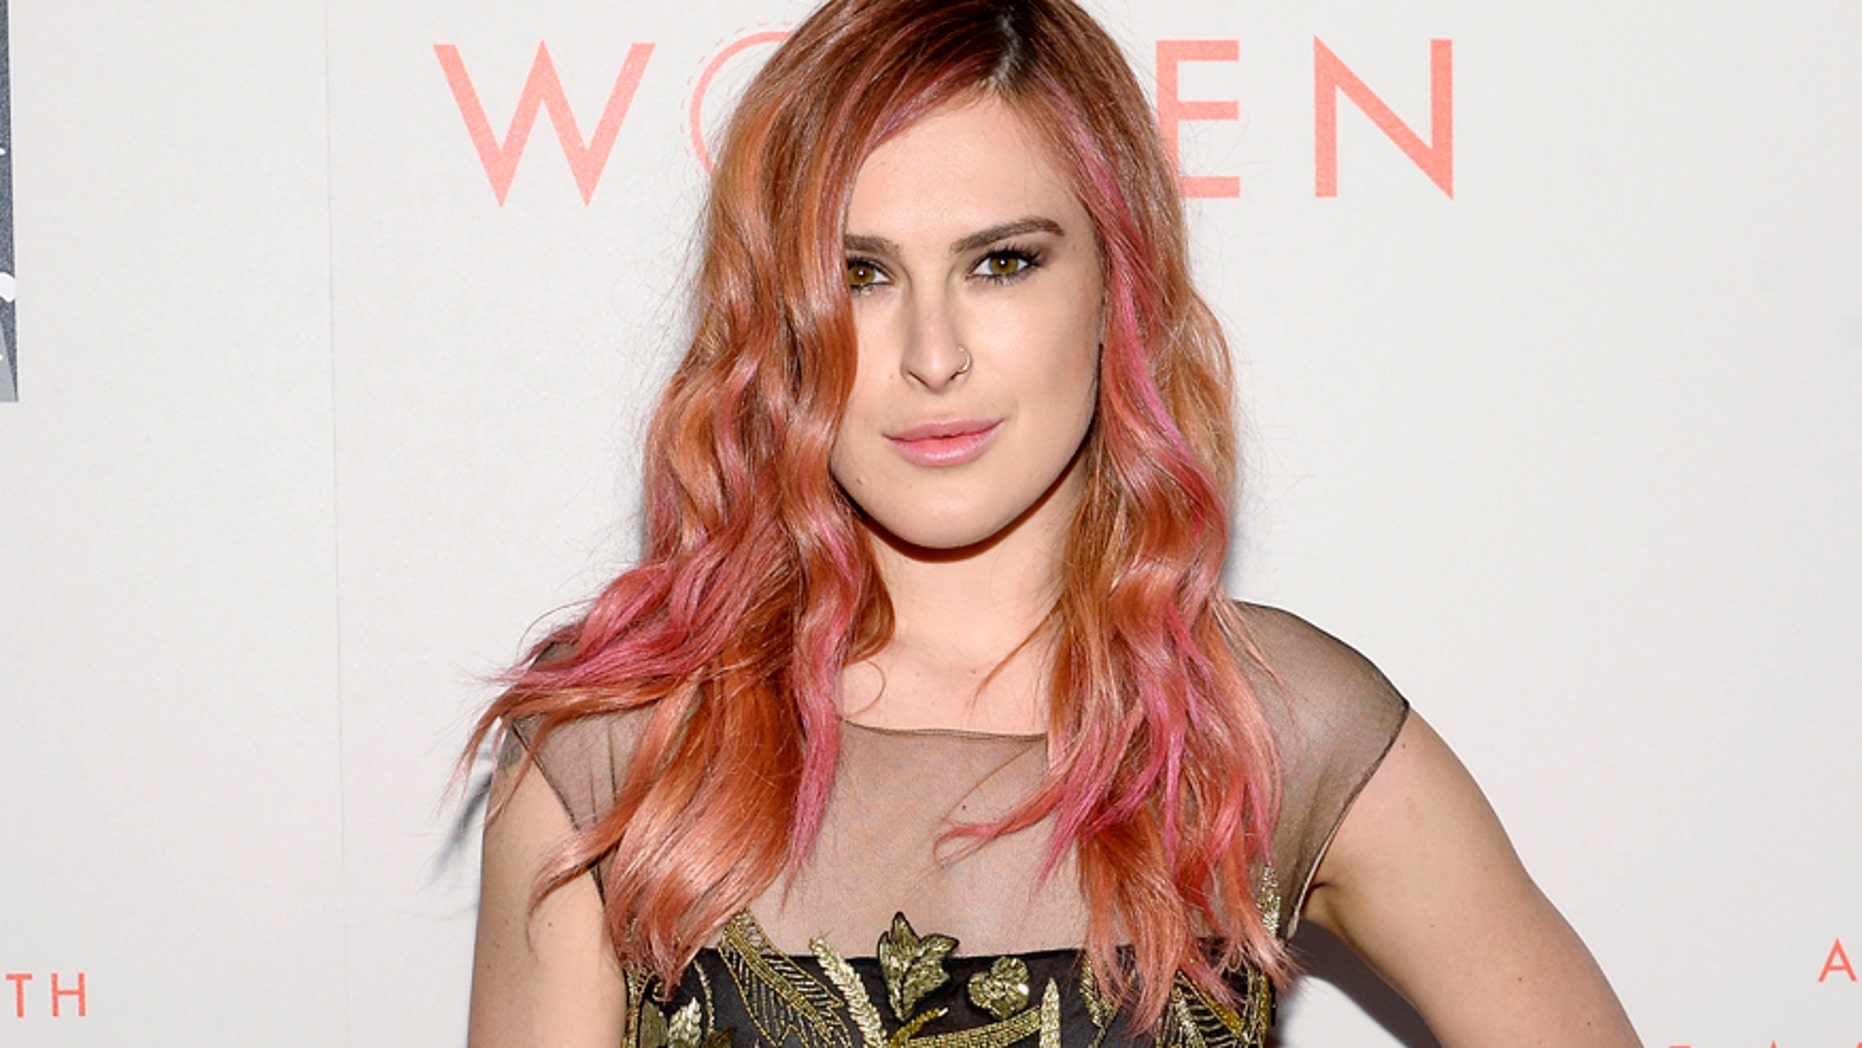 """Actress Rumer Willis arrives for the L.A. Gay & Lesbian Center's Annual """"An Evening With Women"""" event in Beverly Hills, California May 10, 2014. REUTERS/Kevork Djansezian  (UNITED STATES - Tags: ENTERTAINMENT) - RTR3OLZW"""